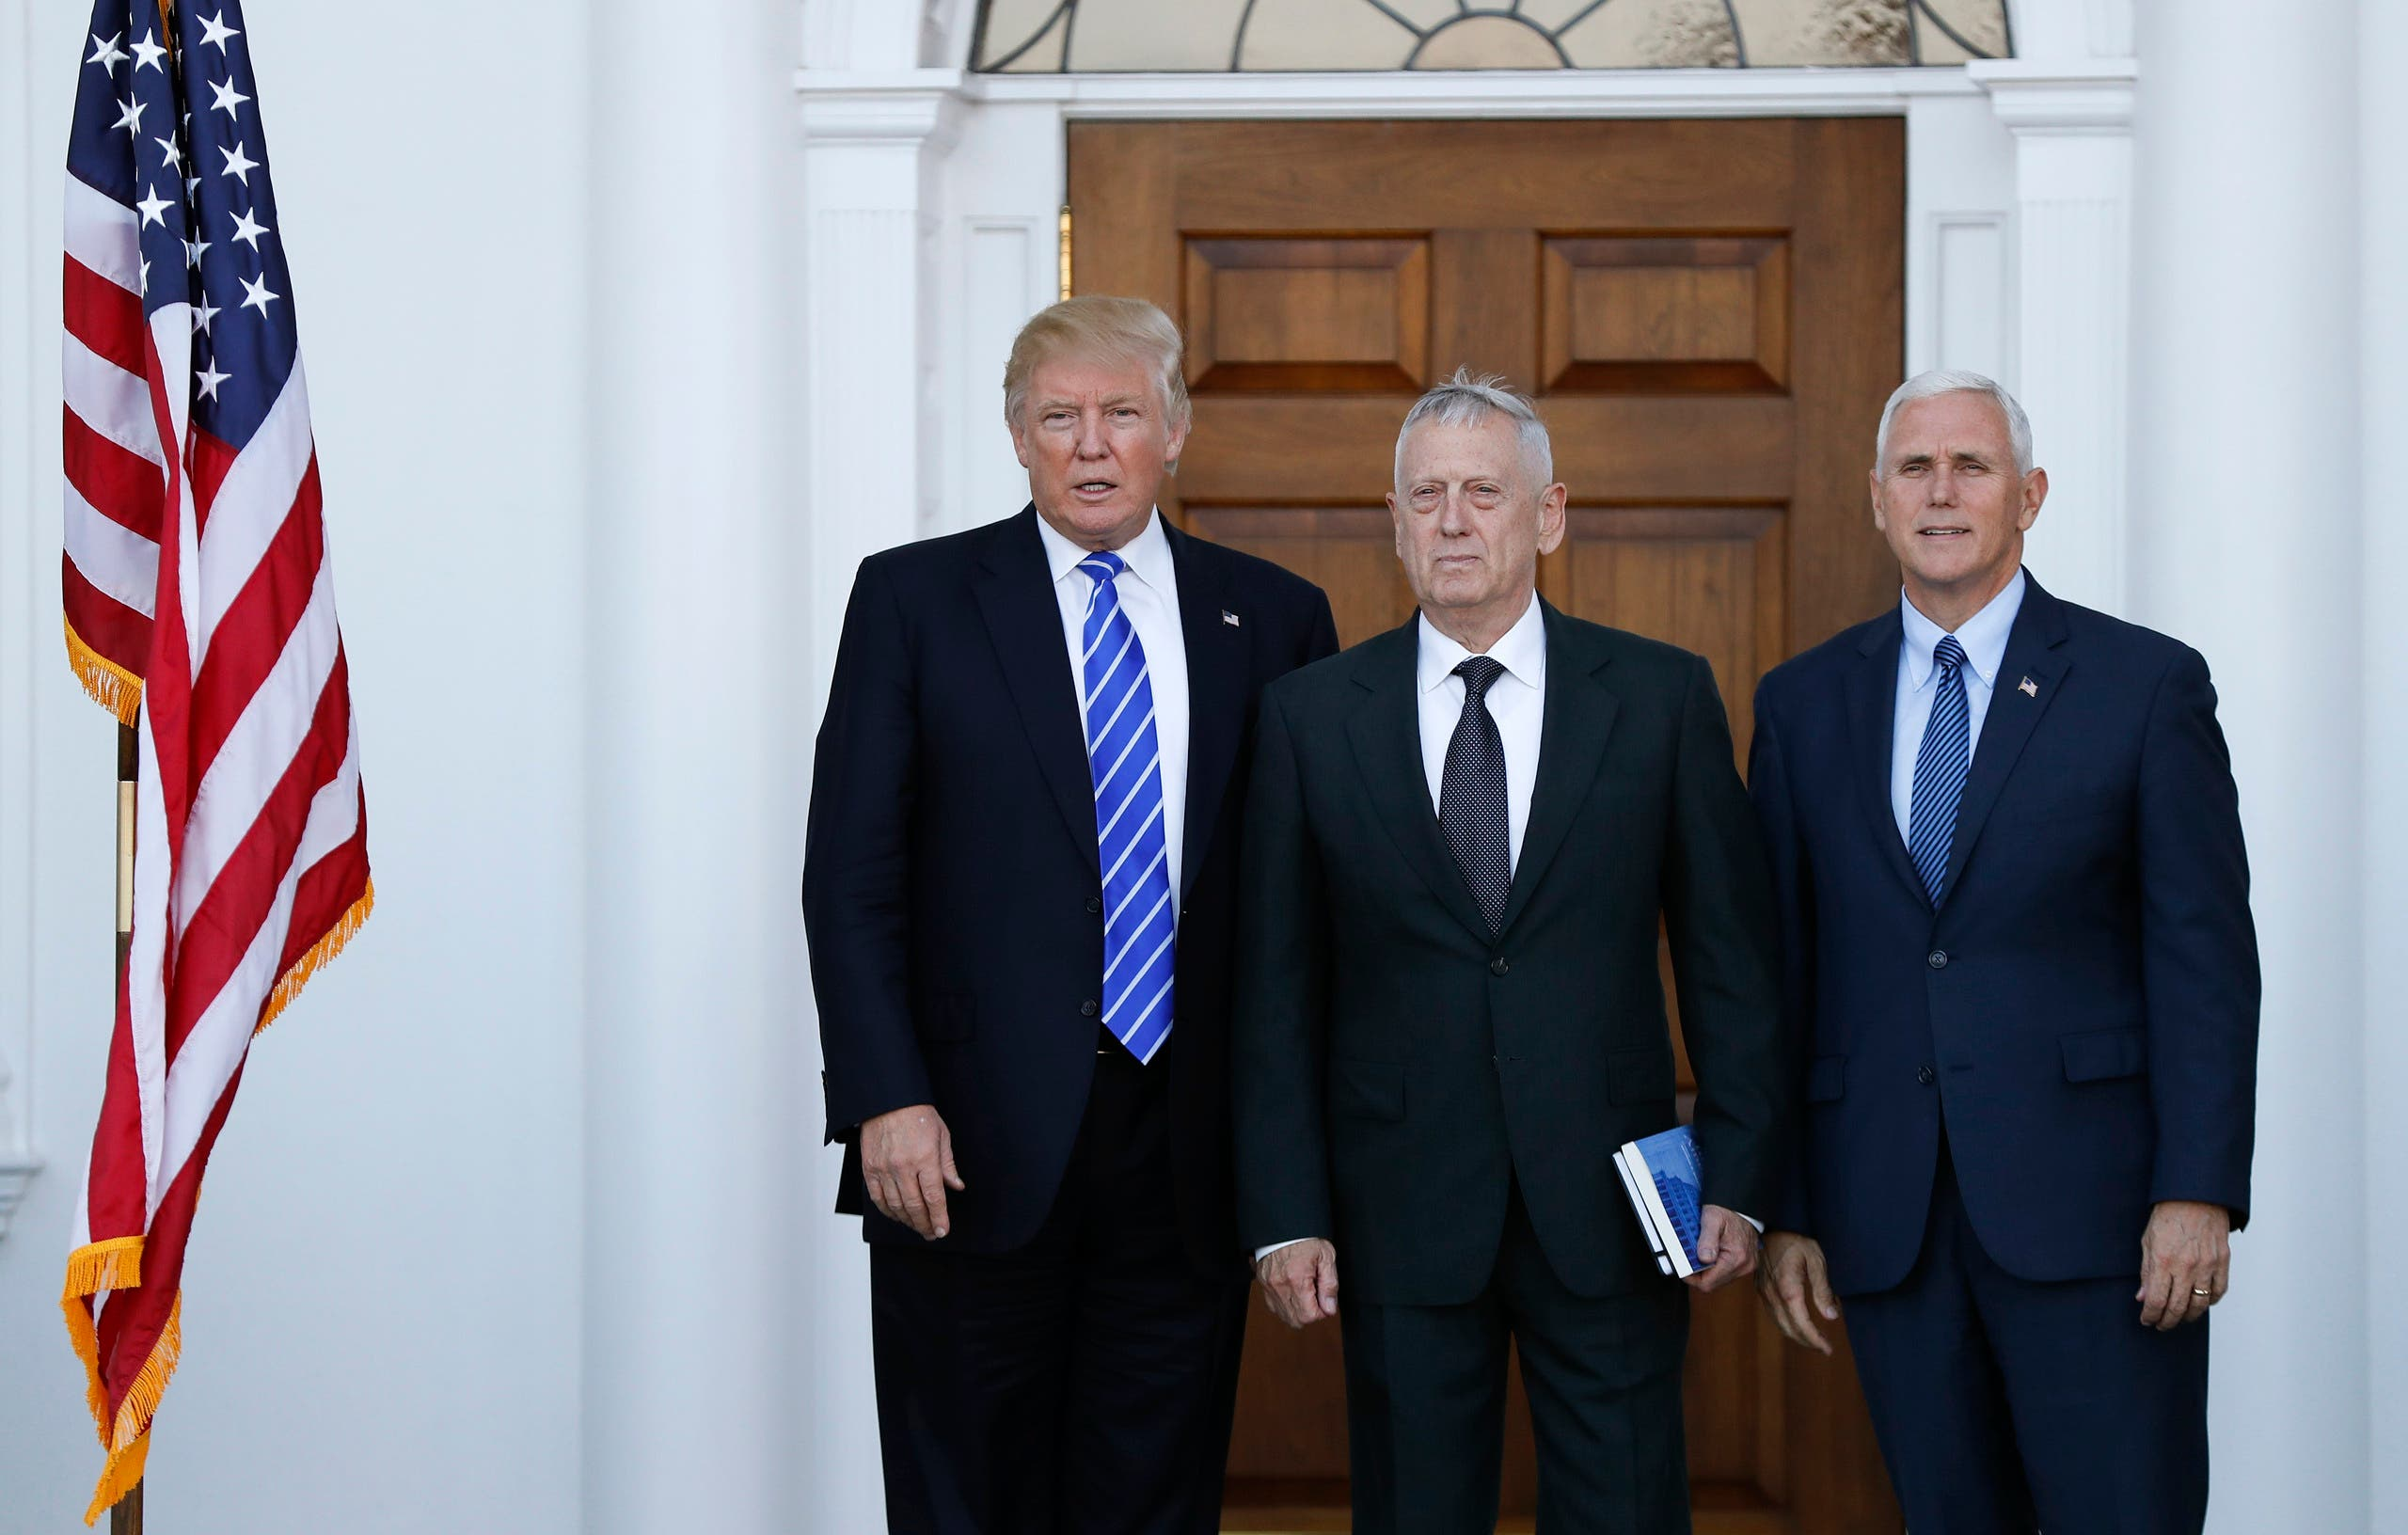 President-elect Donald Trump and Vice President-elect Mike Pence pose for photographes with retired Marine Corps Gen. James Mattis as he arrives at Trump National Golf Club Bedminster clubhouse in Bedminster, N.J., Saturday, Nov. 19, 2016. (AP)